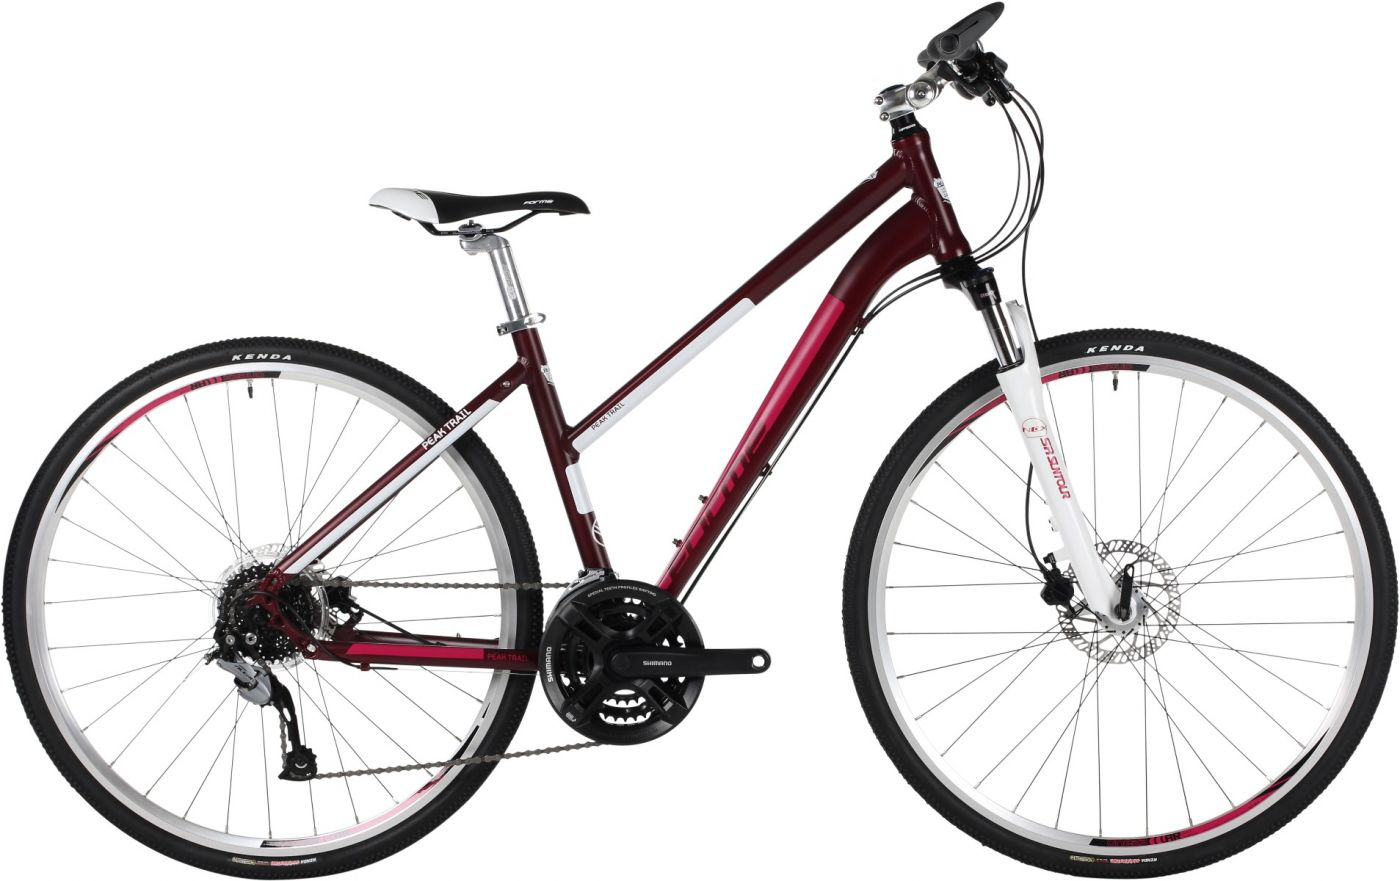 Peak Trail 1 FE Hybrid Bike